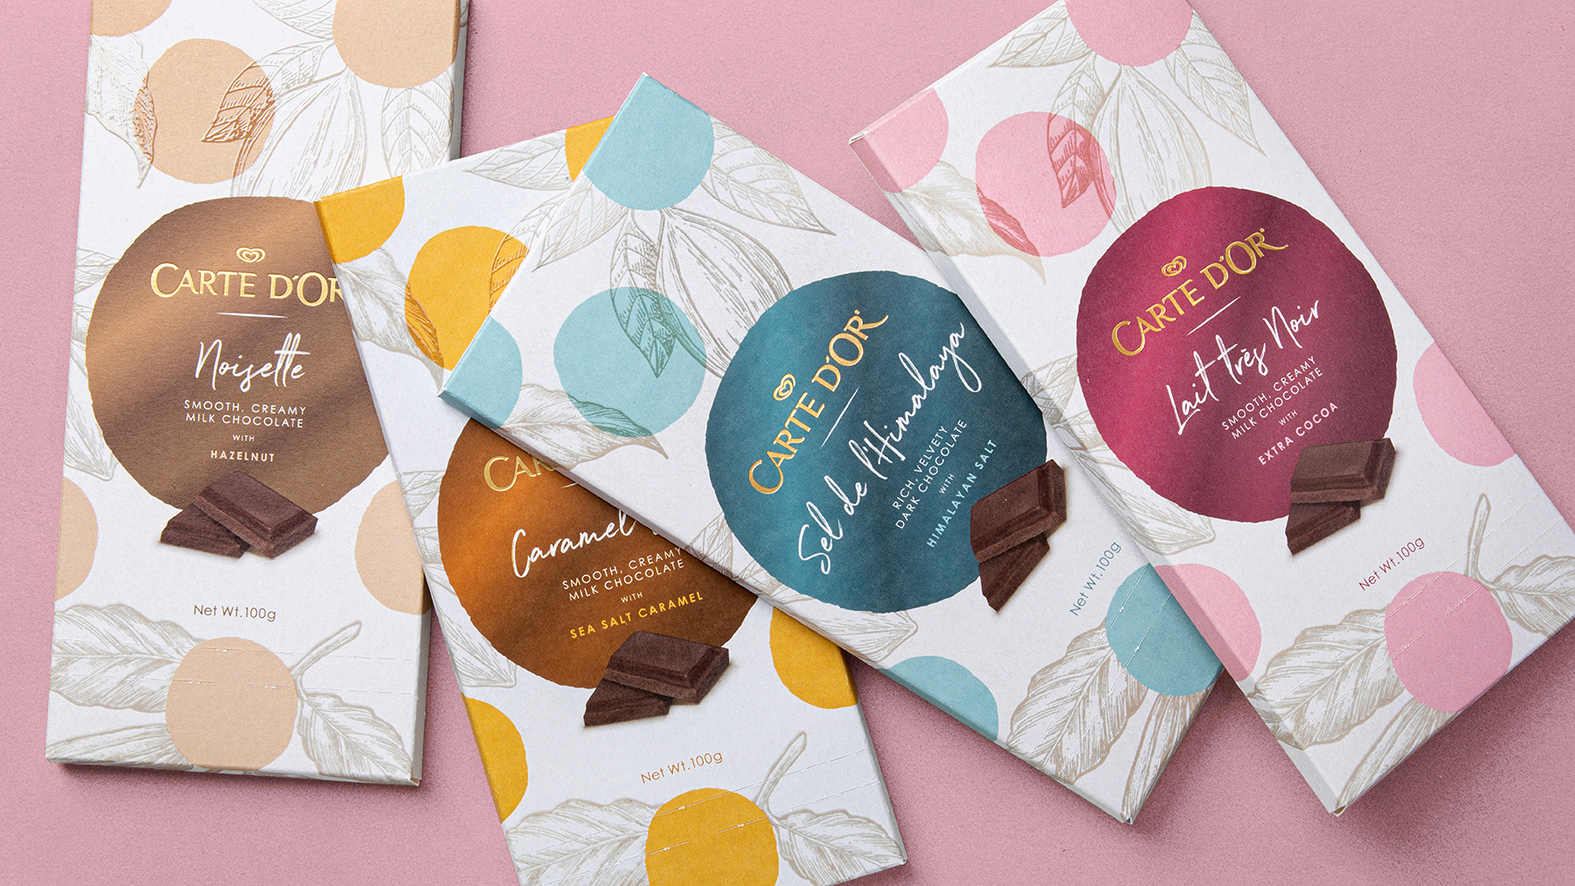 A Whole New Chocolate Experience From Carte d'Or